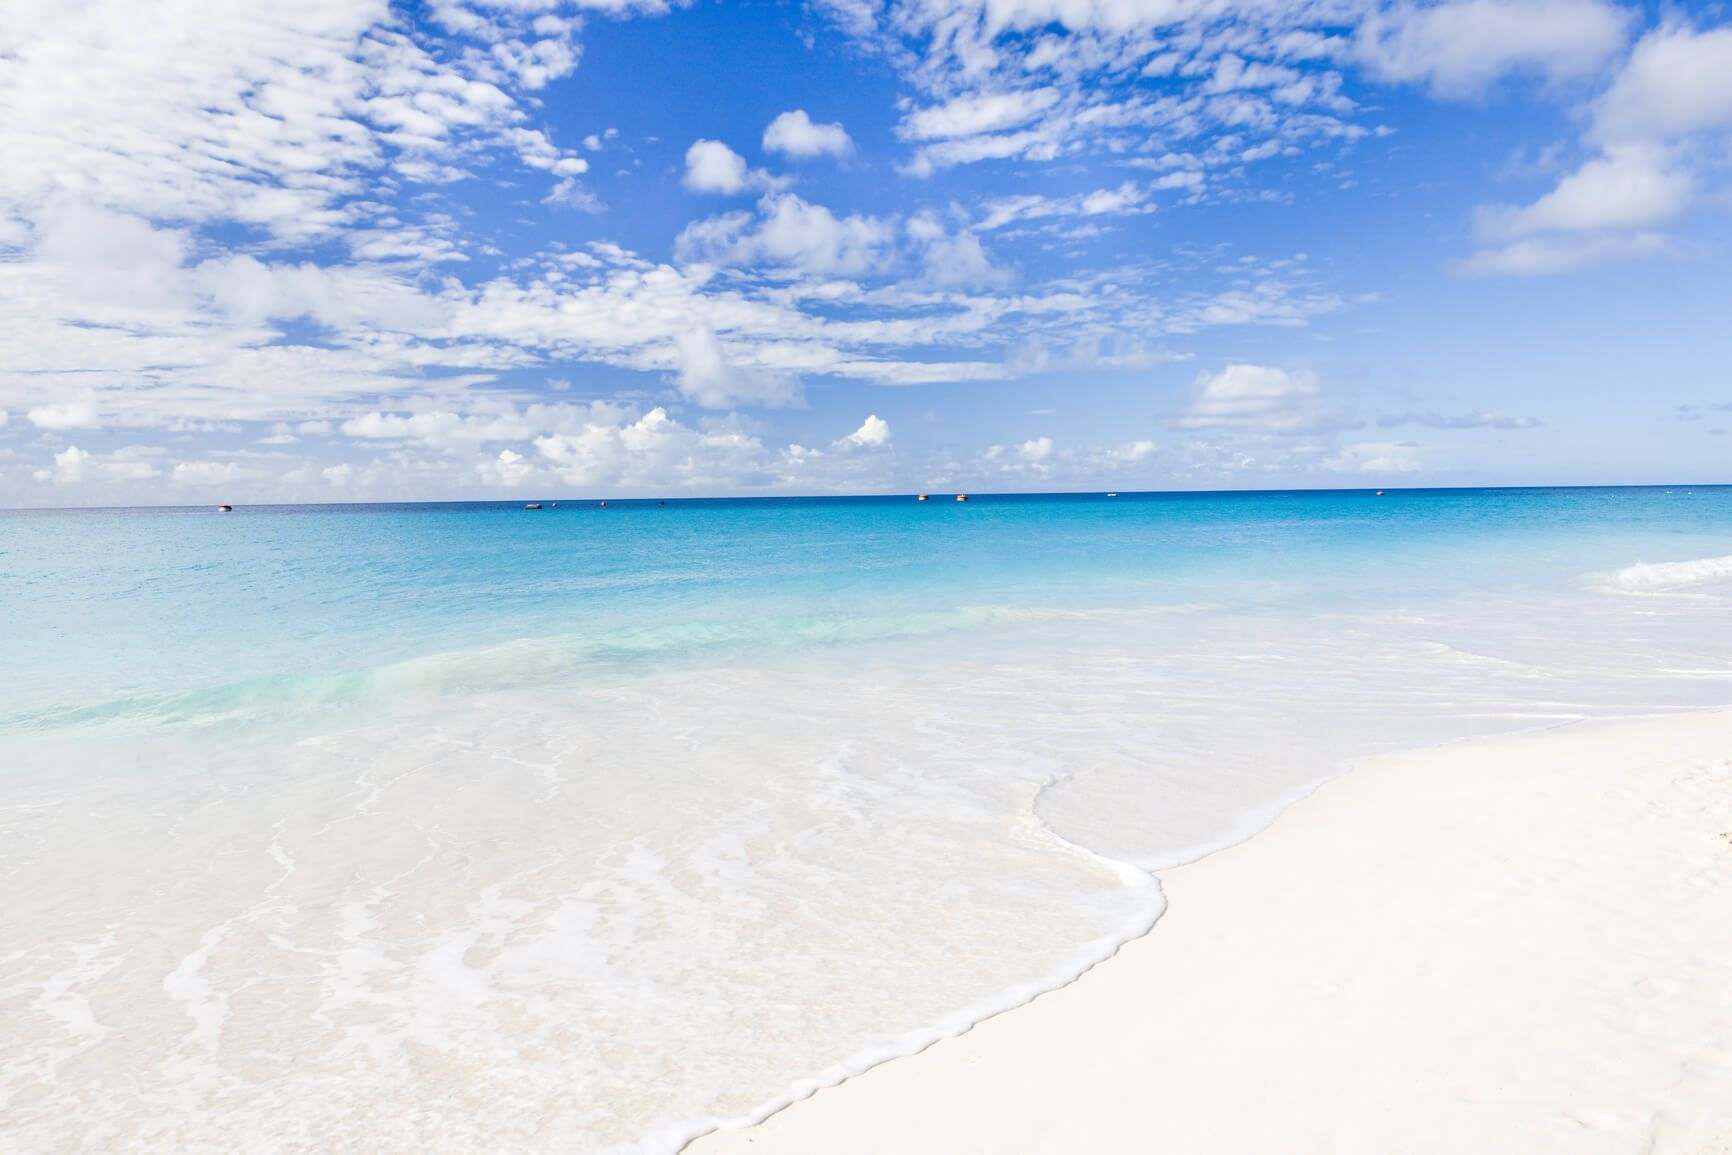 EXPIRED** Nonstop from London, UK to Barbados for only £